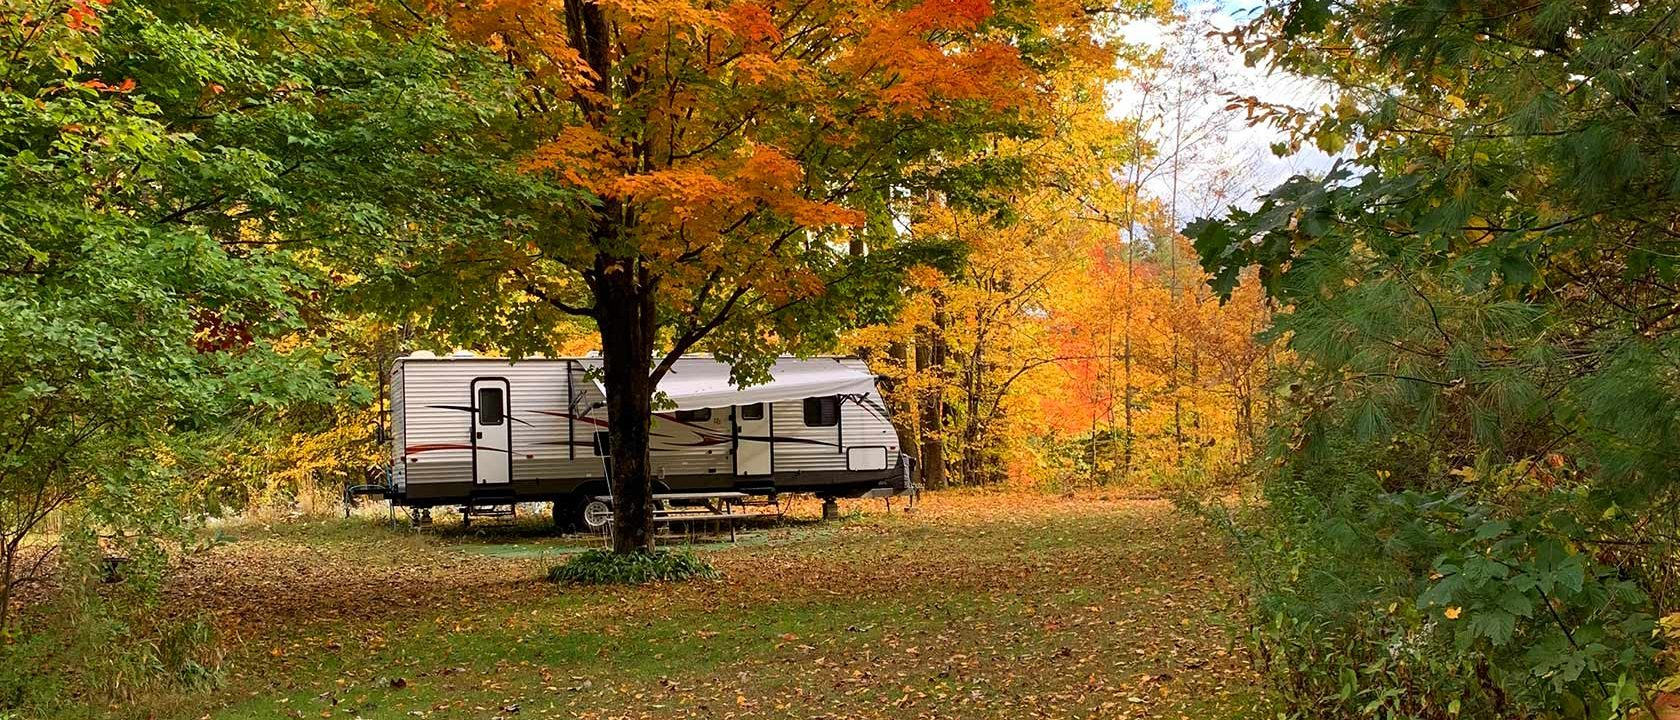 Baker River Camping RV Site